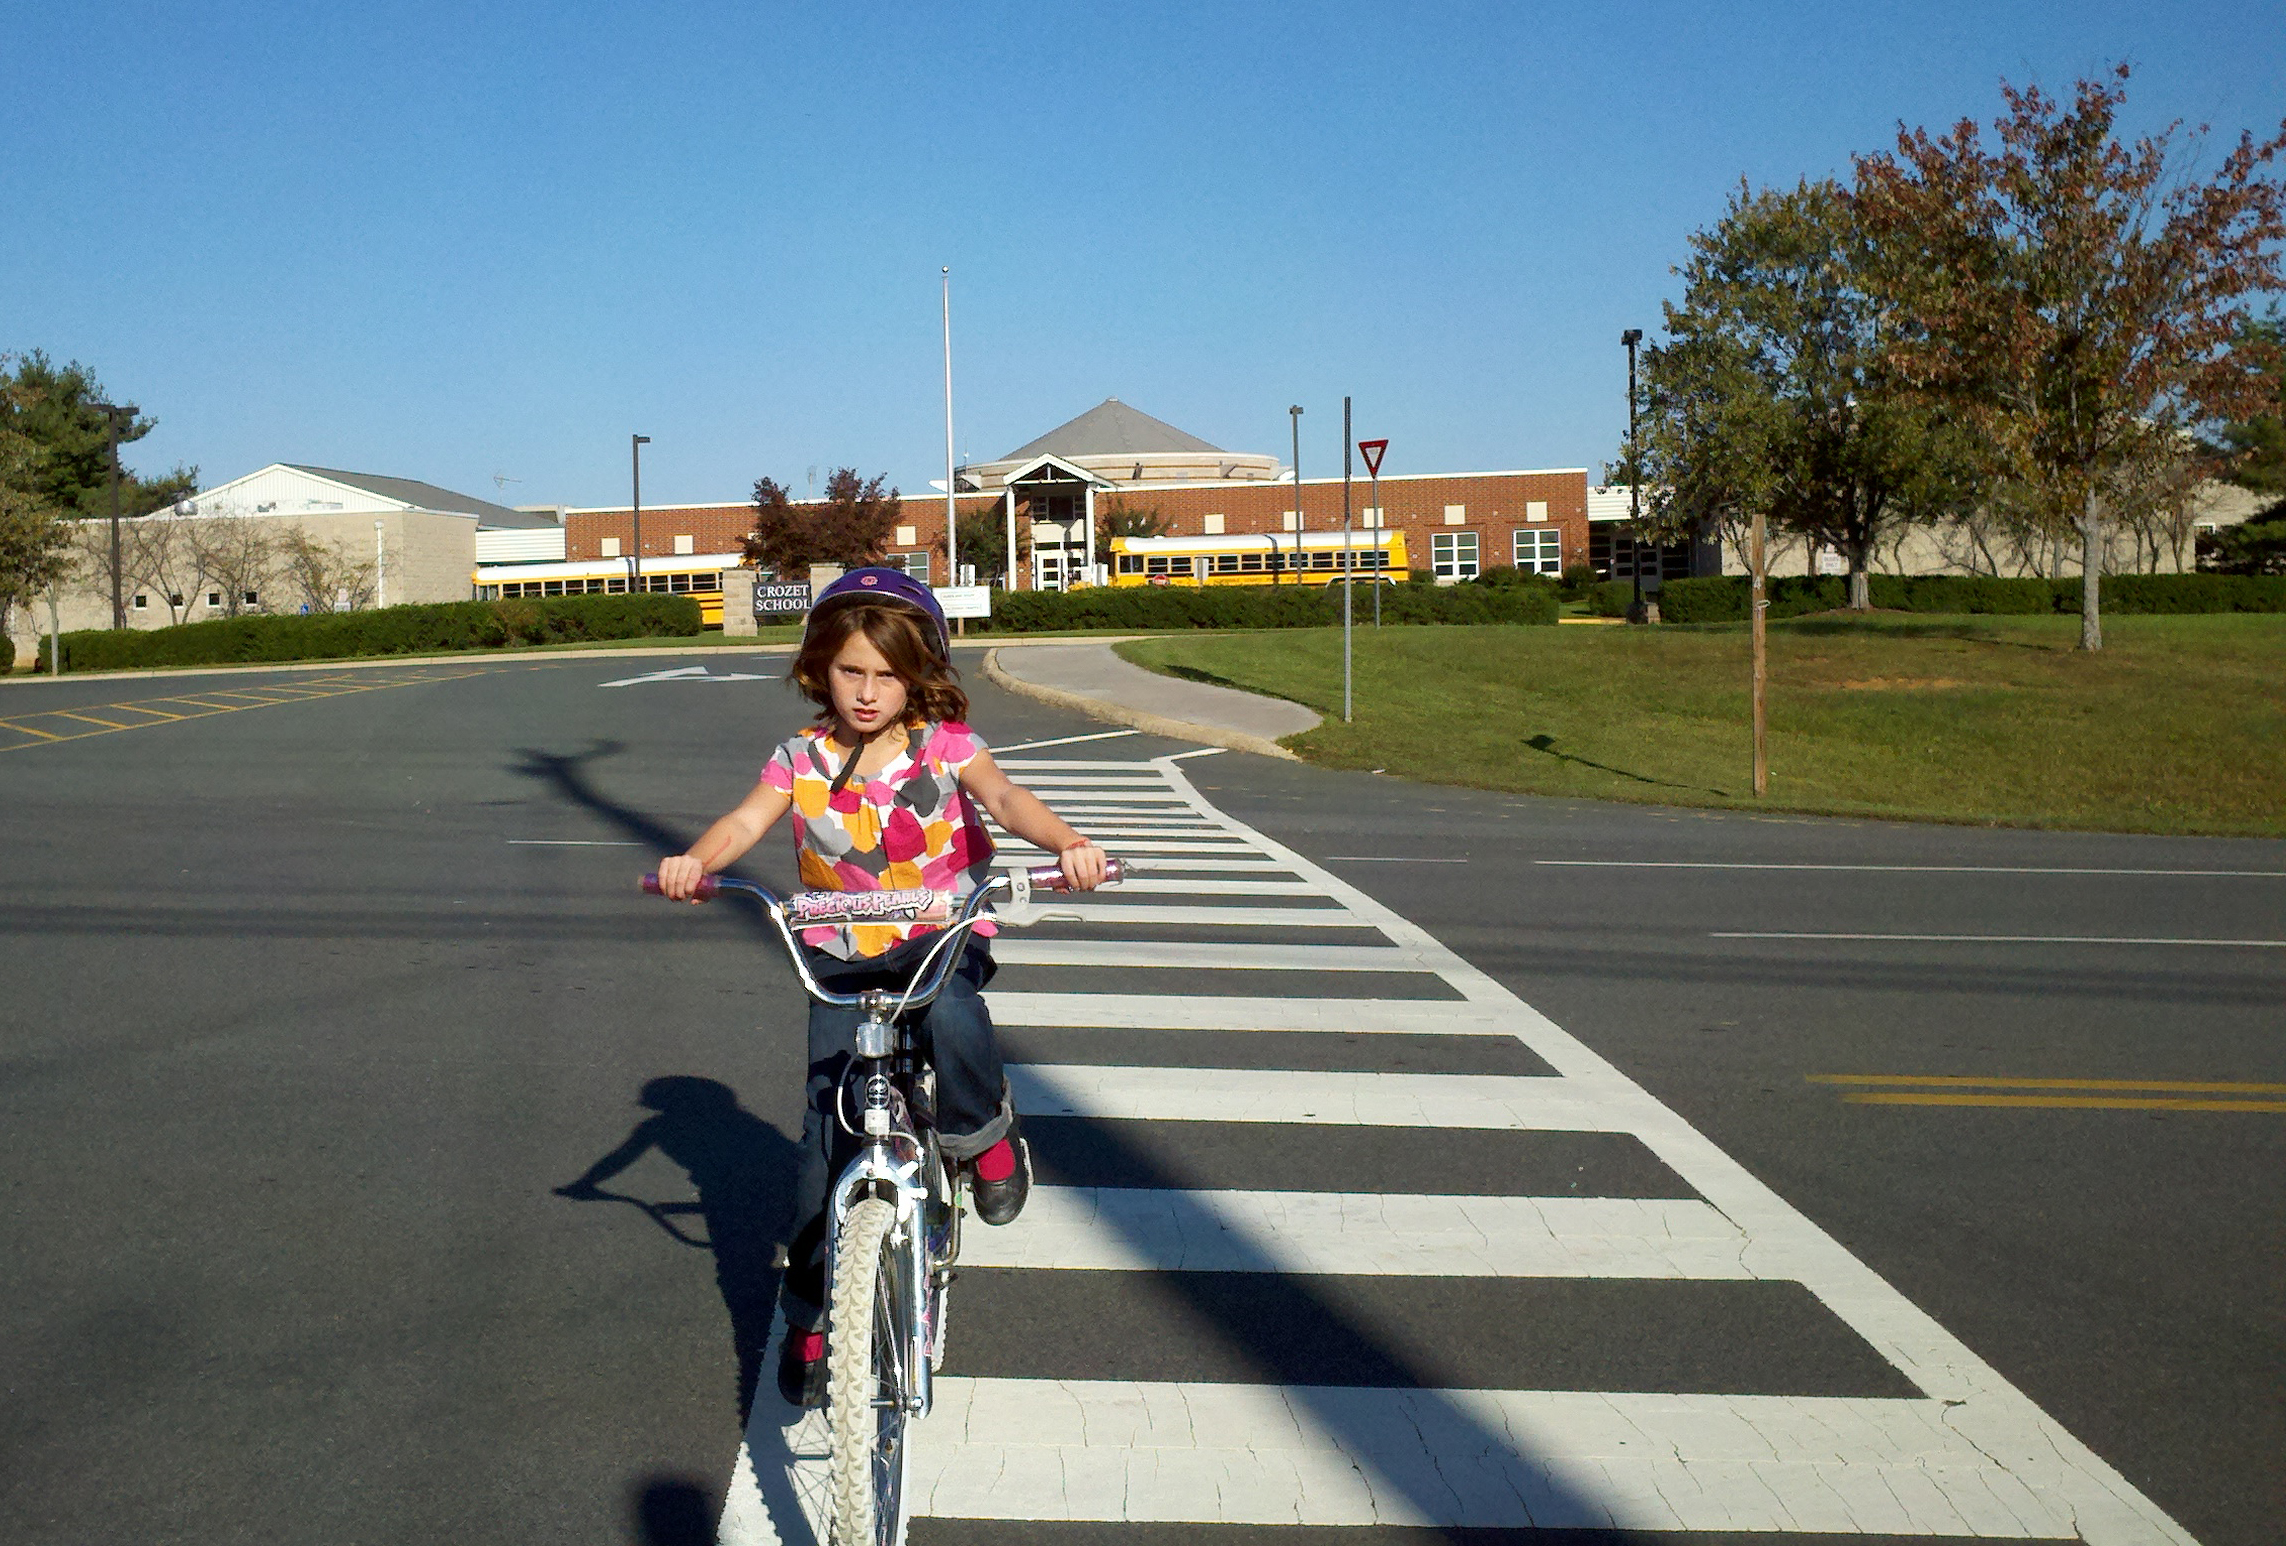 Ella Duncan regularly rides her bike home from Crozet Elementary with her father, Jim, who promotes walk-to-school initiatives on his blog, RealCrozetVA.com. Photo courtesy Jim Duncan.